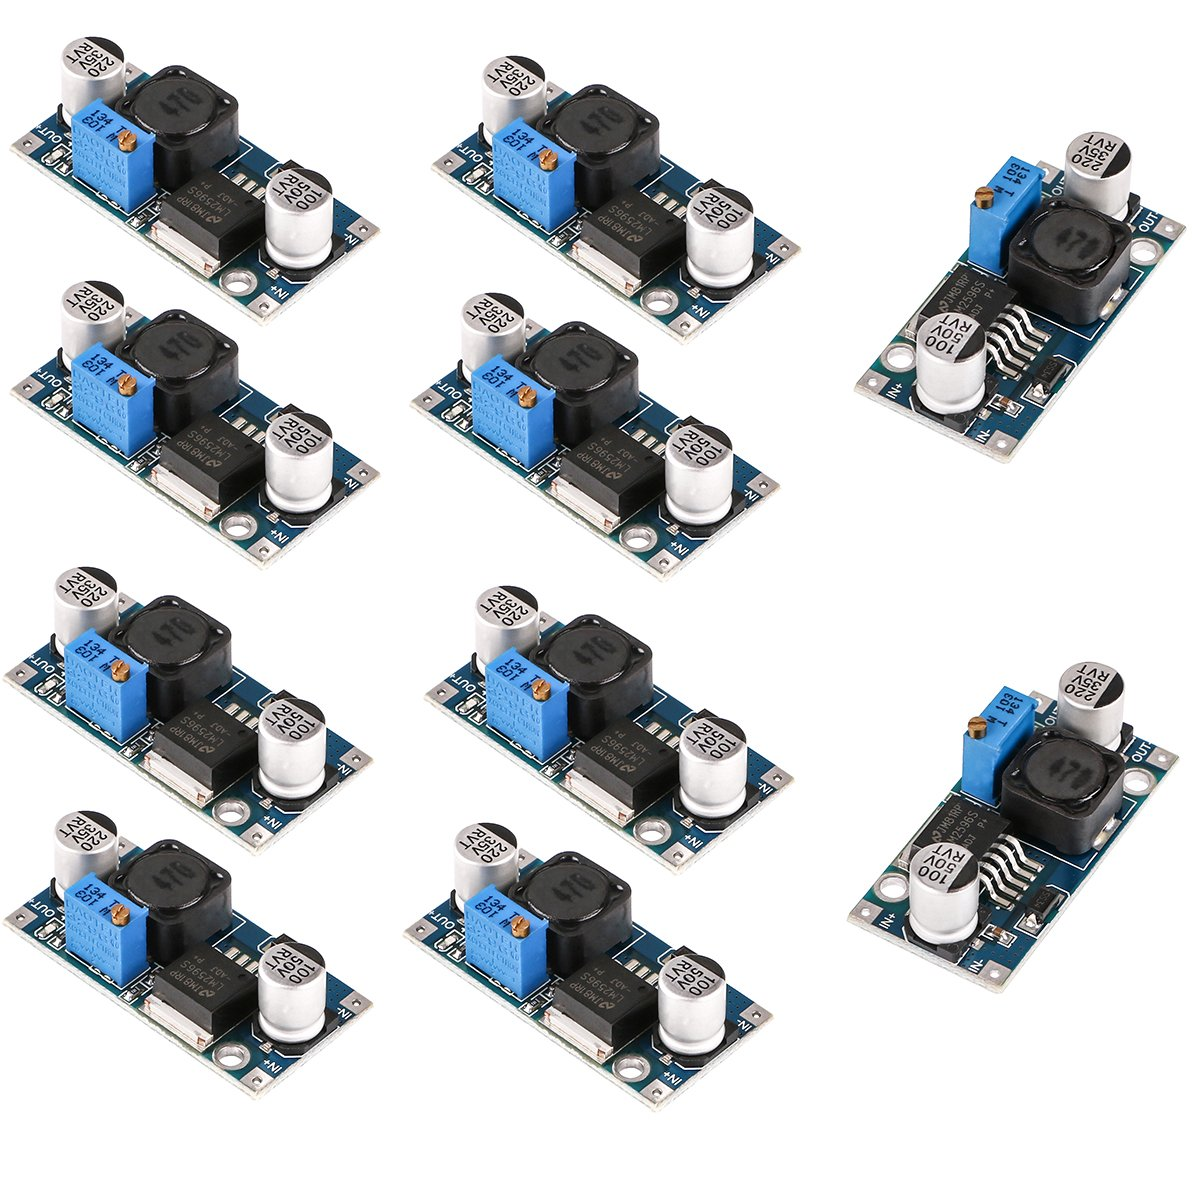 MakerHawk 10pcs LM2596 DC-DC Buck Converter High Efficiency Voltage Regulator 3.0-40V to 1.5-35V Adjustable Power Supply Step Down Module